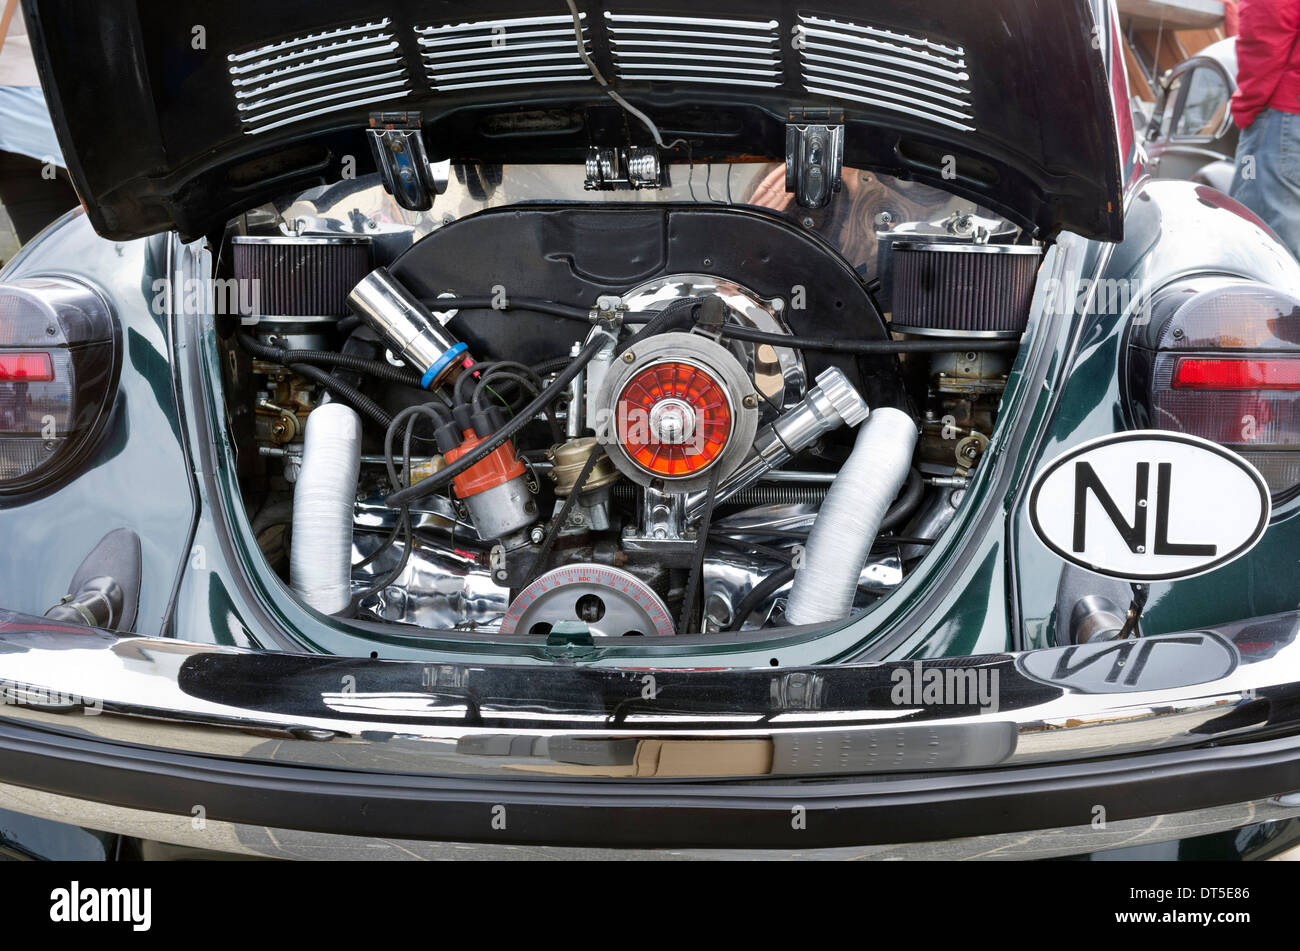 Rear mounted air cooled engine Volkswagen VW Beetle on display at Stock Photo: 66503814 - Alamy